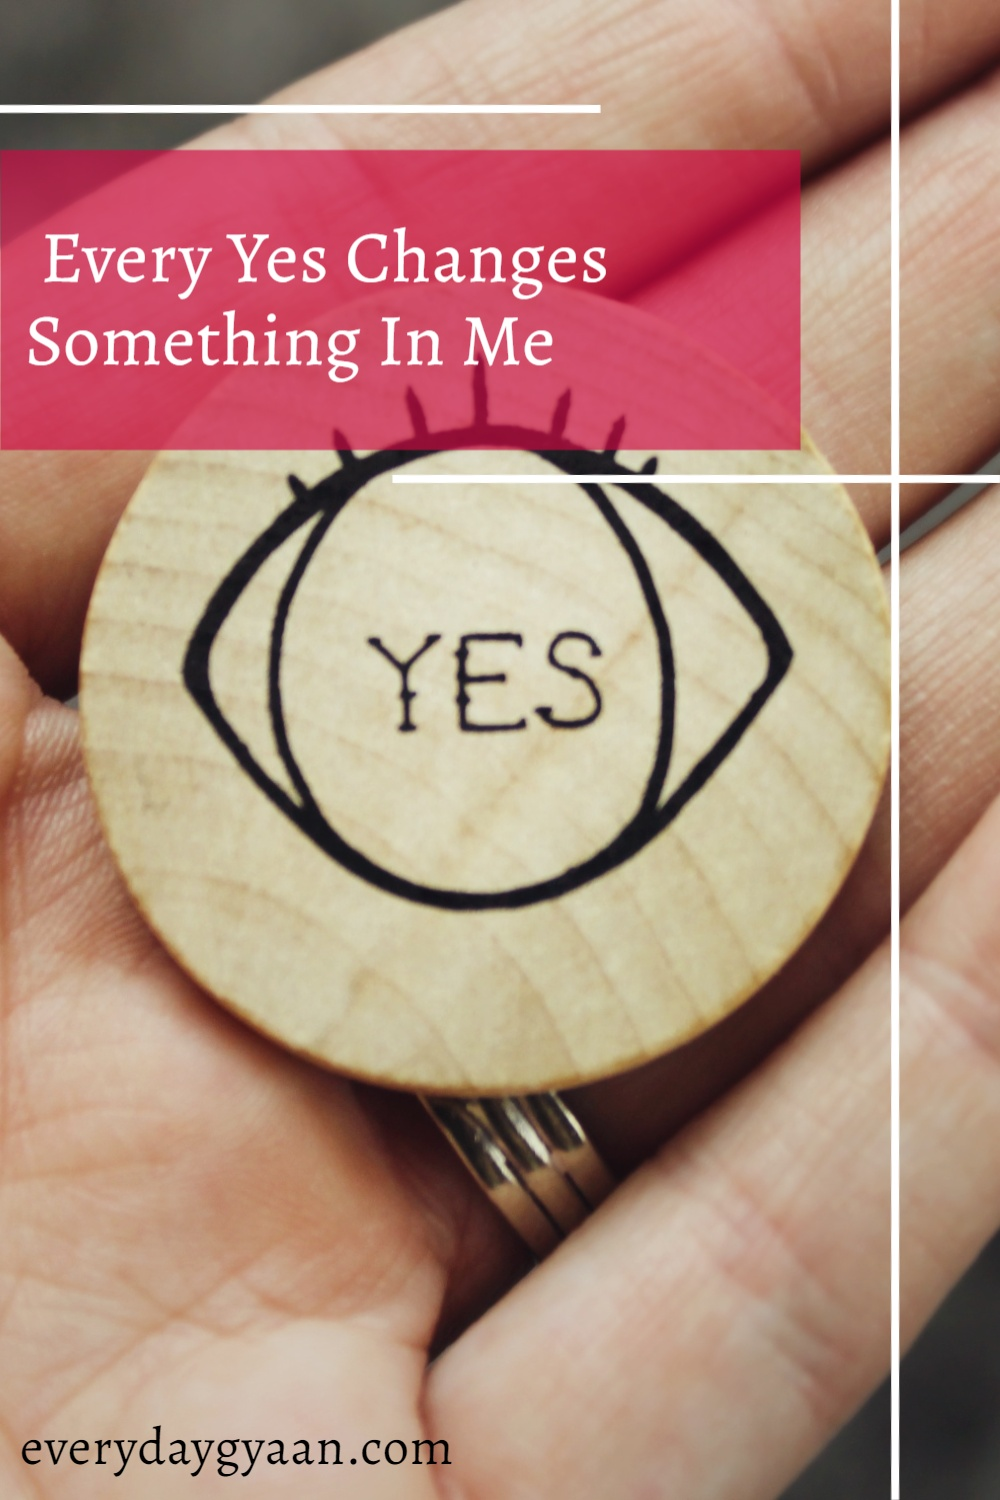 Every Yes Changes Something In Me